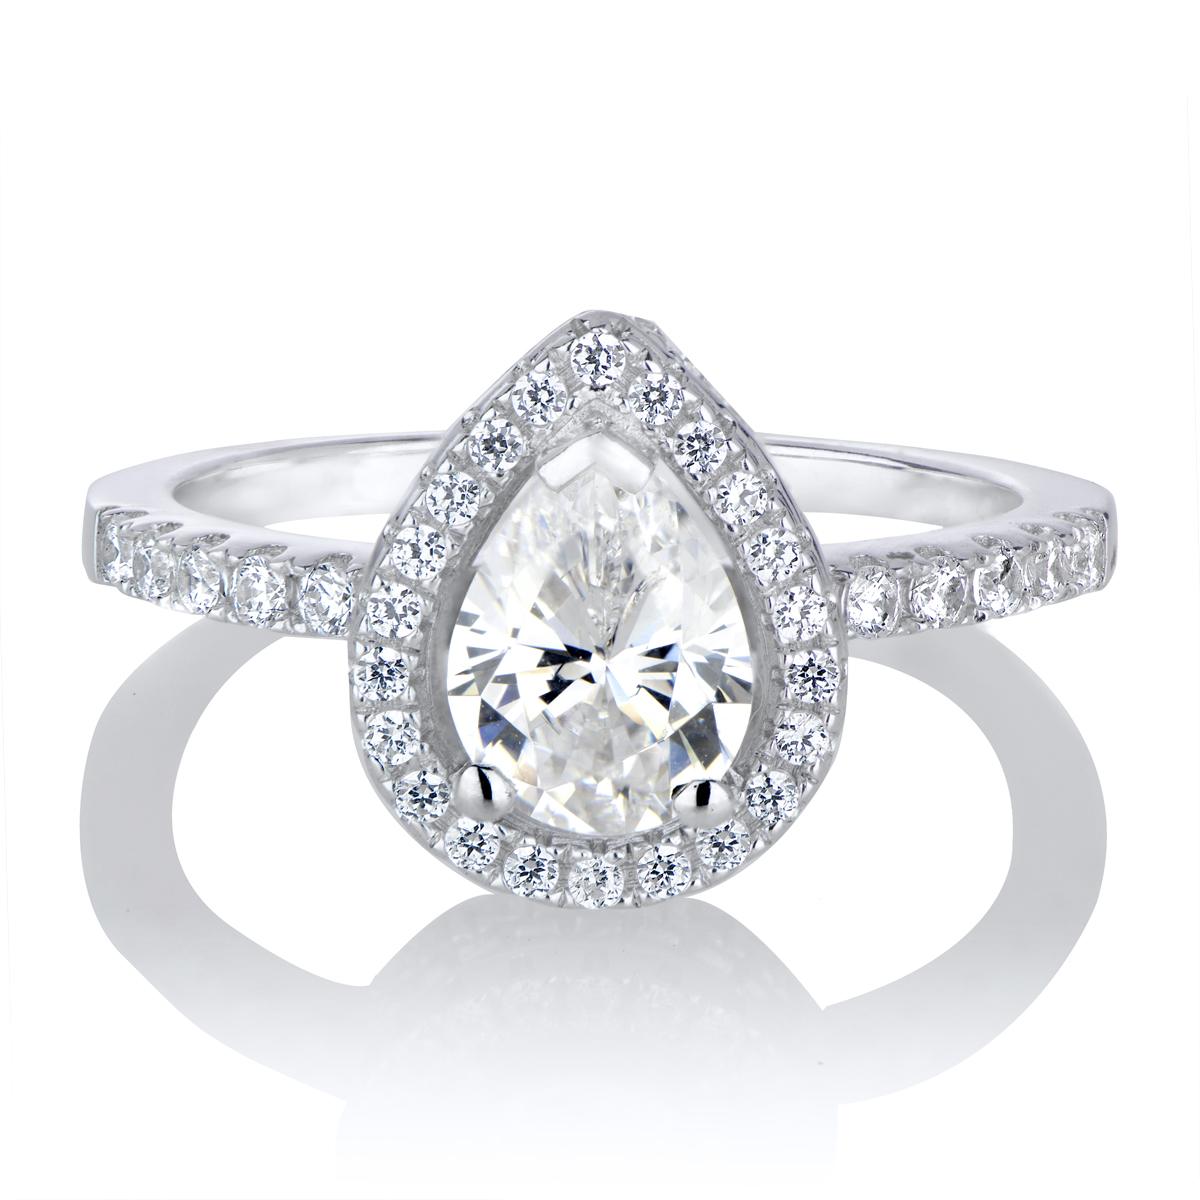 Kajana s 2ct CZ Pear Cut Halo Engagement Ring